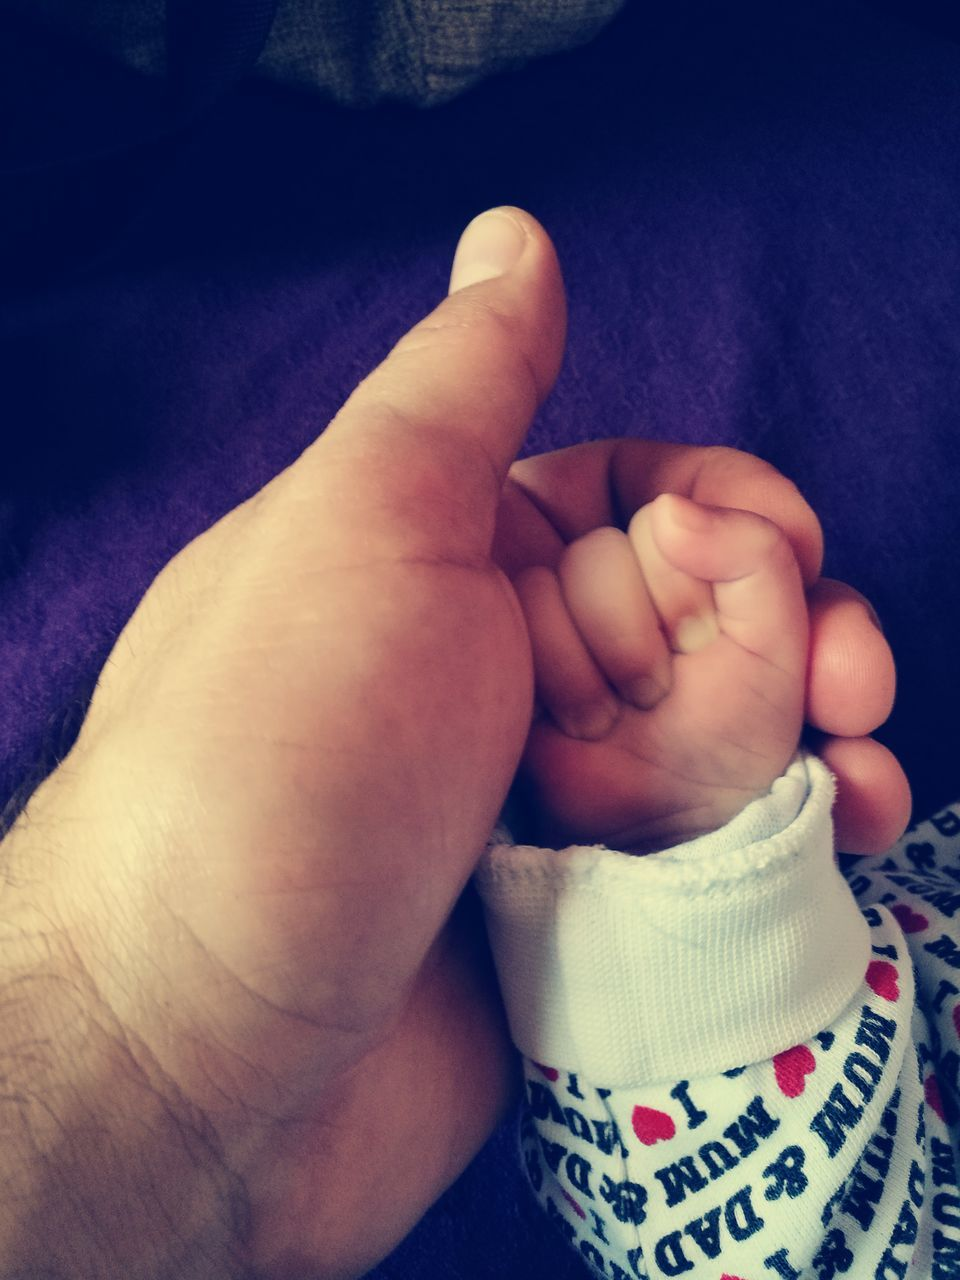 baby, human body part, real people, one person, indoors, newborn, human leg, babyhood, barefoot, human hand, close-up, childhood, fragility, low section, day, people